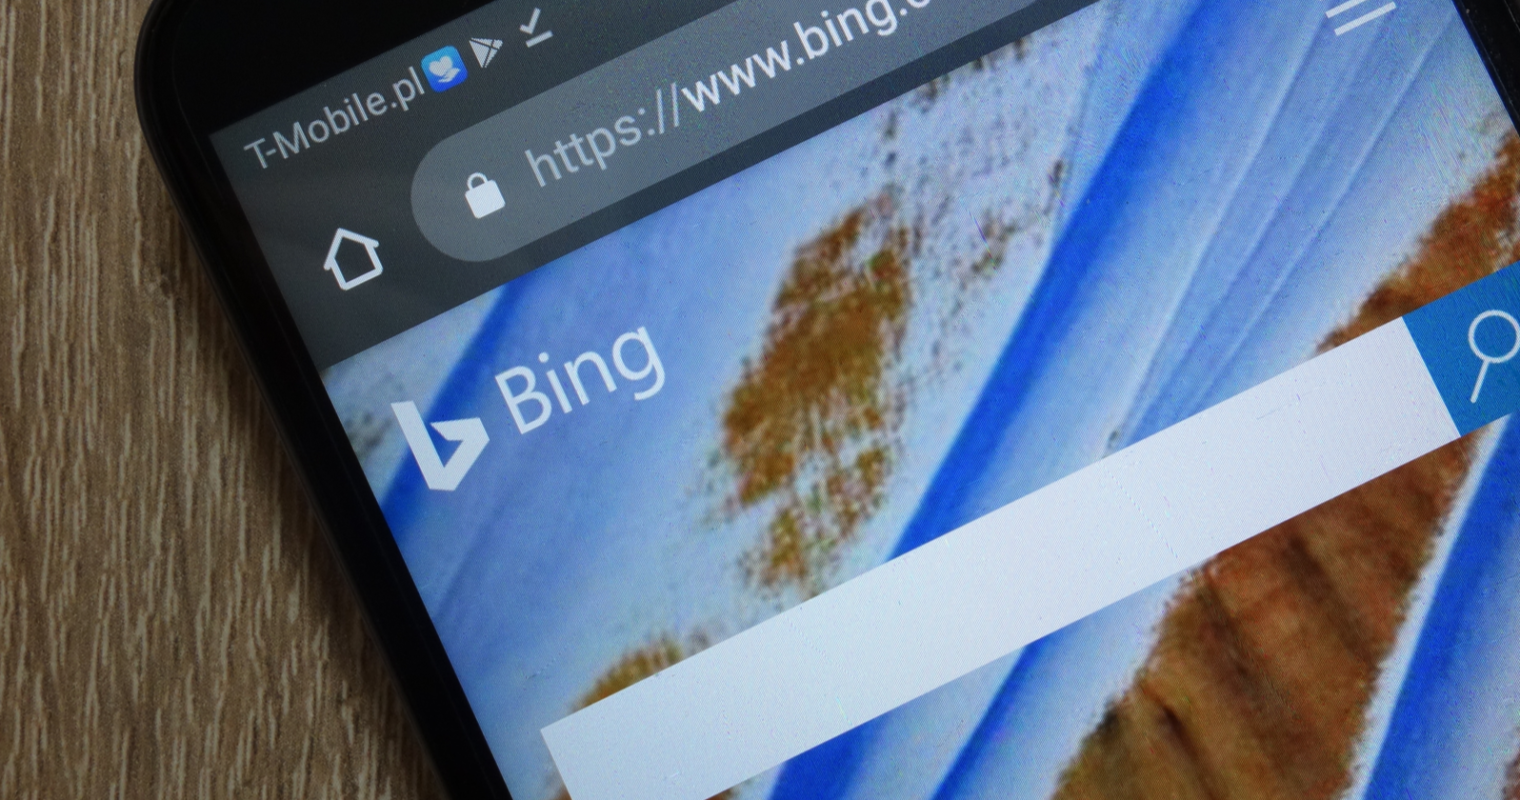 Bing Rolls Out Text-to-Speech for Search Results